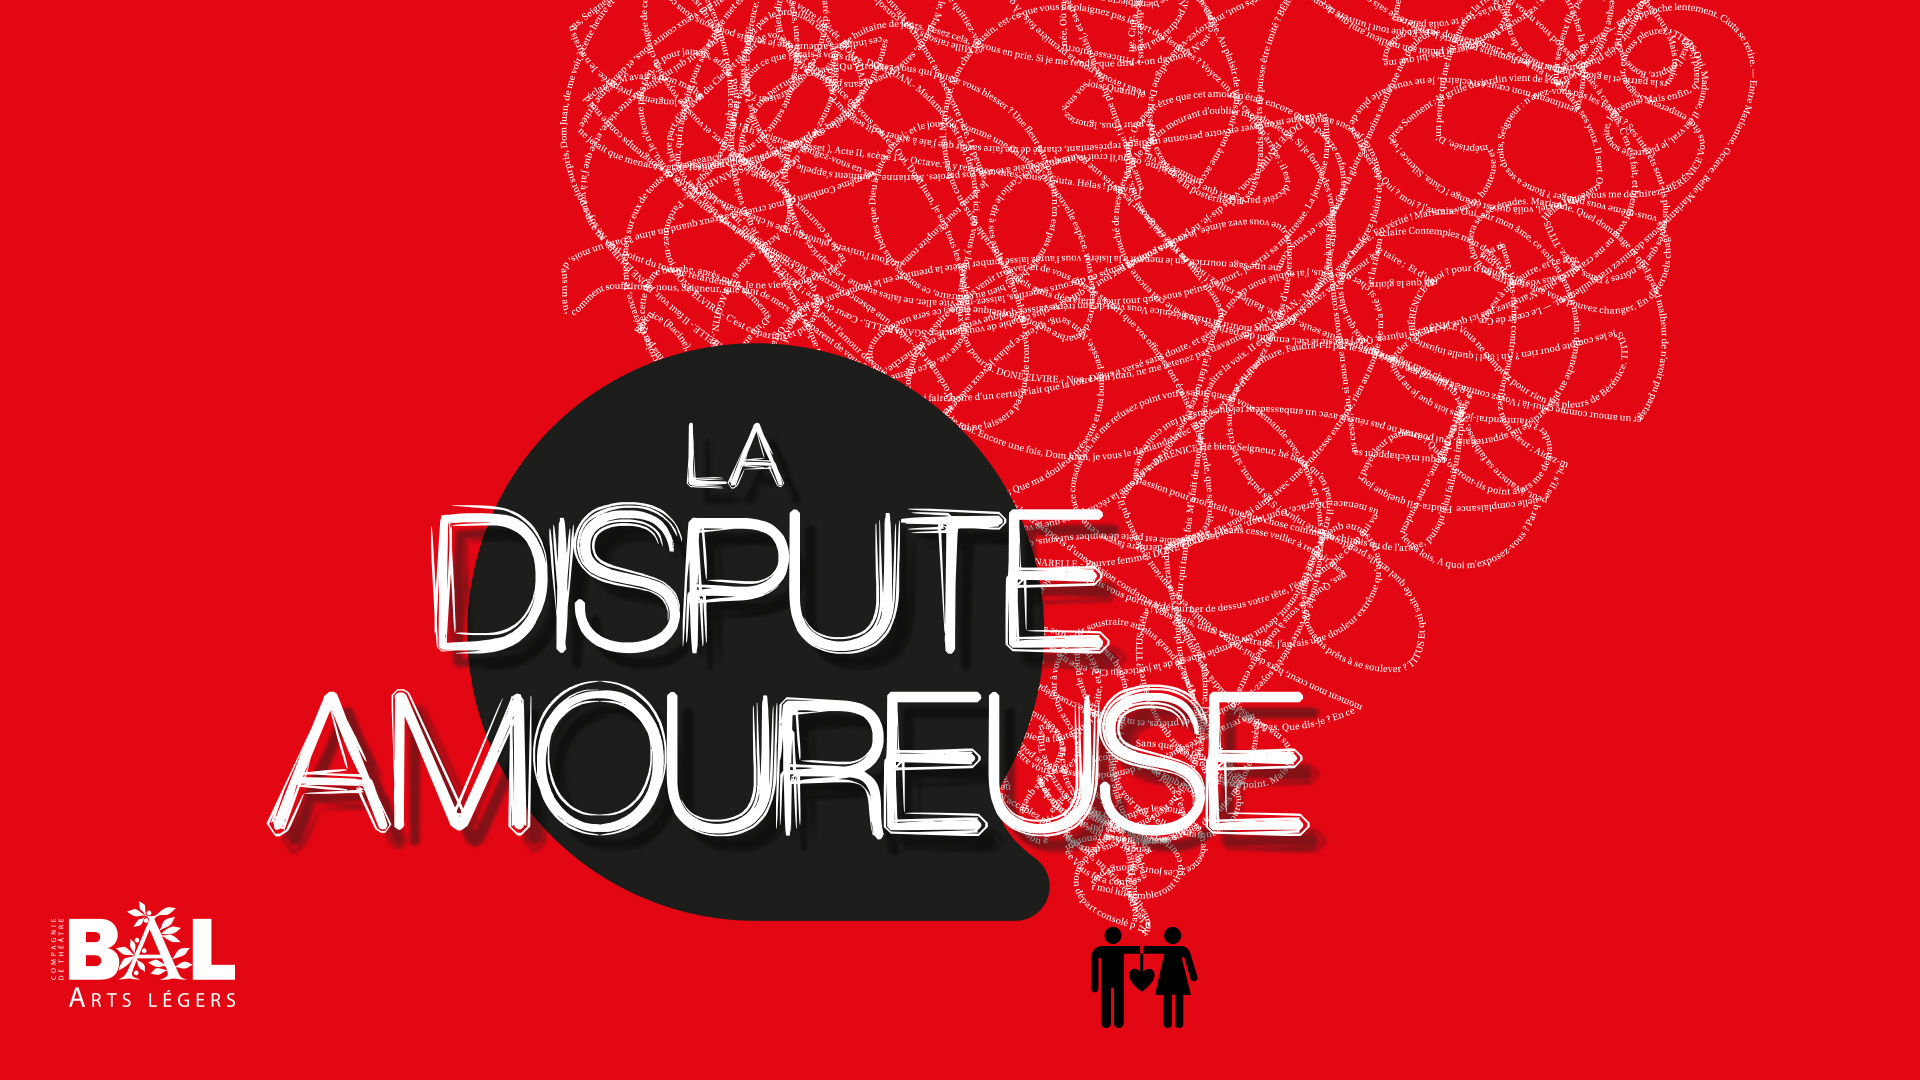 La Dispute Amoureuse